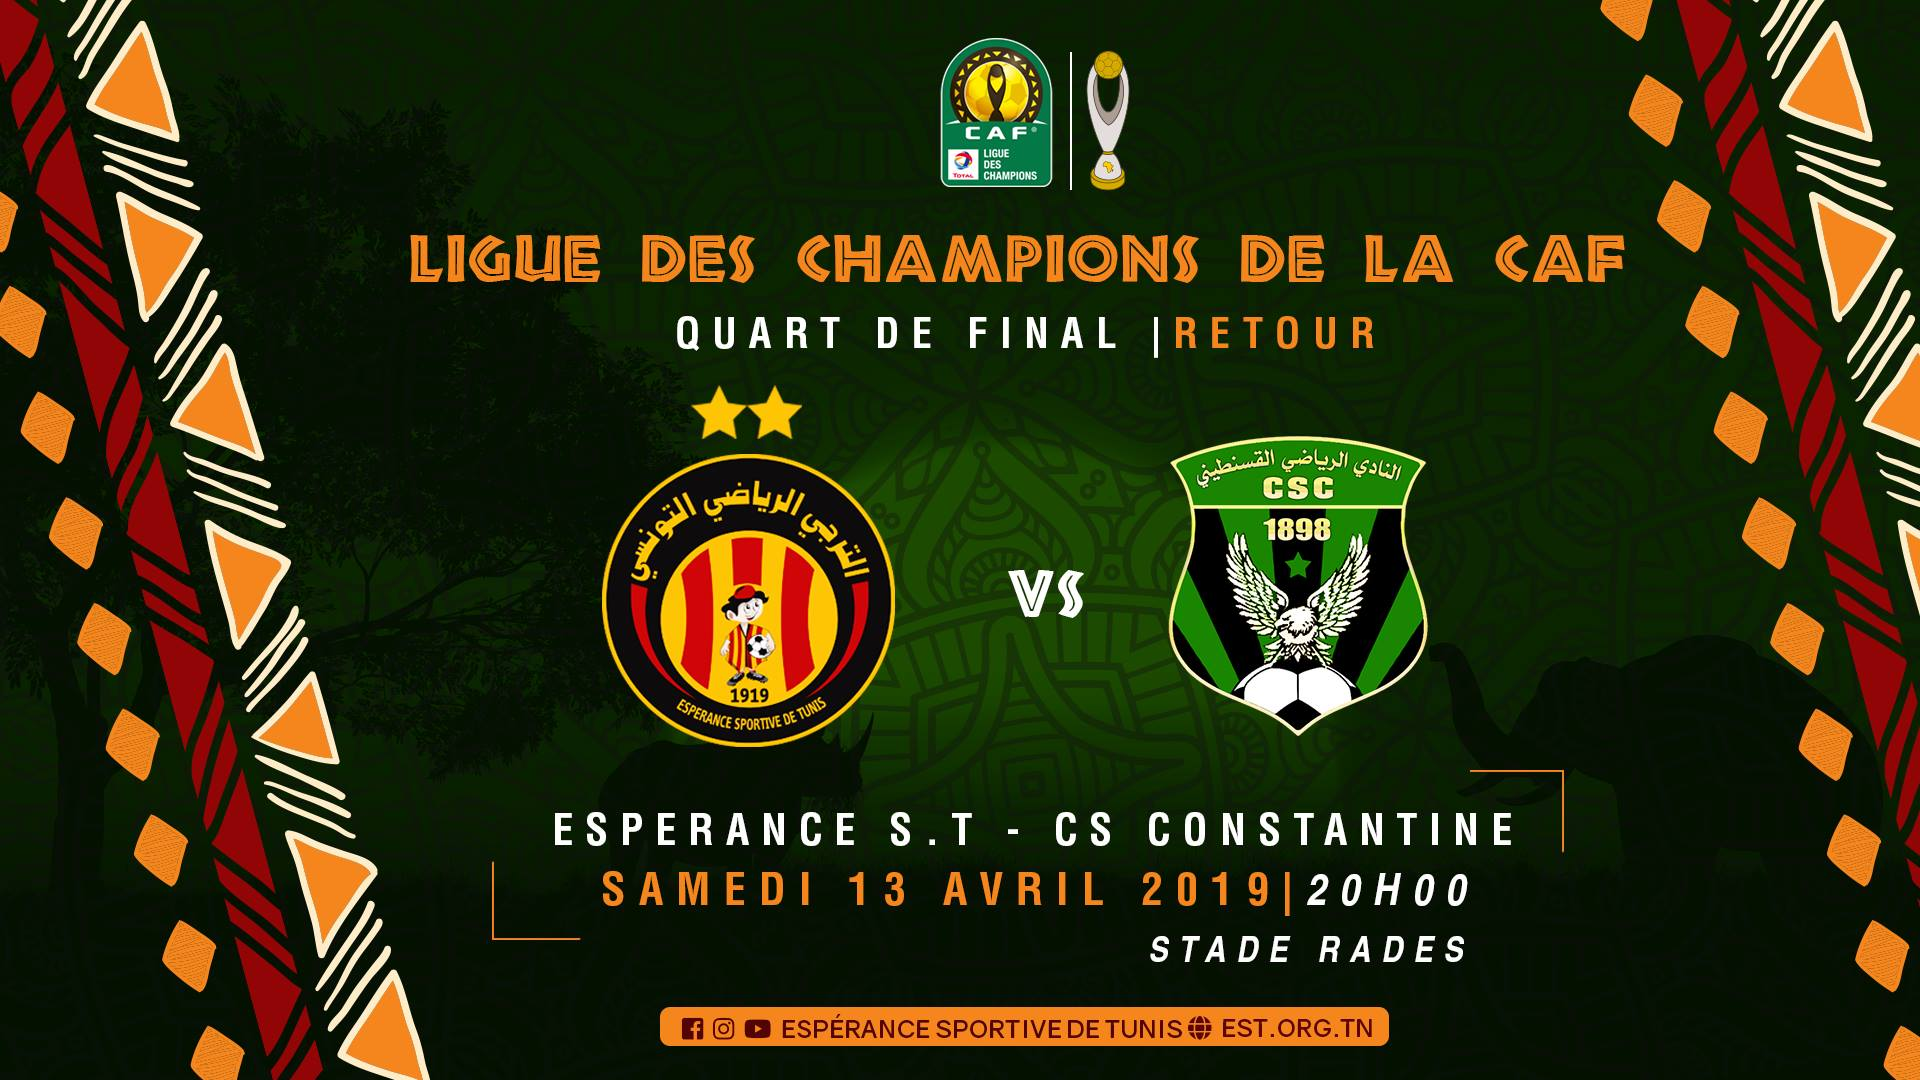 https://www.reddit.com/user/dfdsff_fdas/comments/bvdi1k/finale_ligue_des_champions_2019_en_direct/